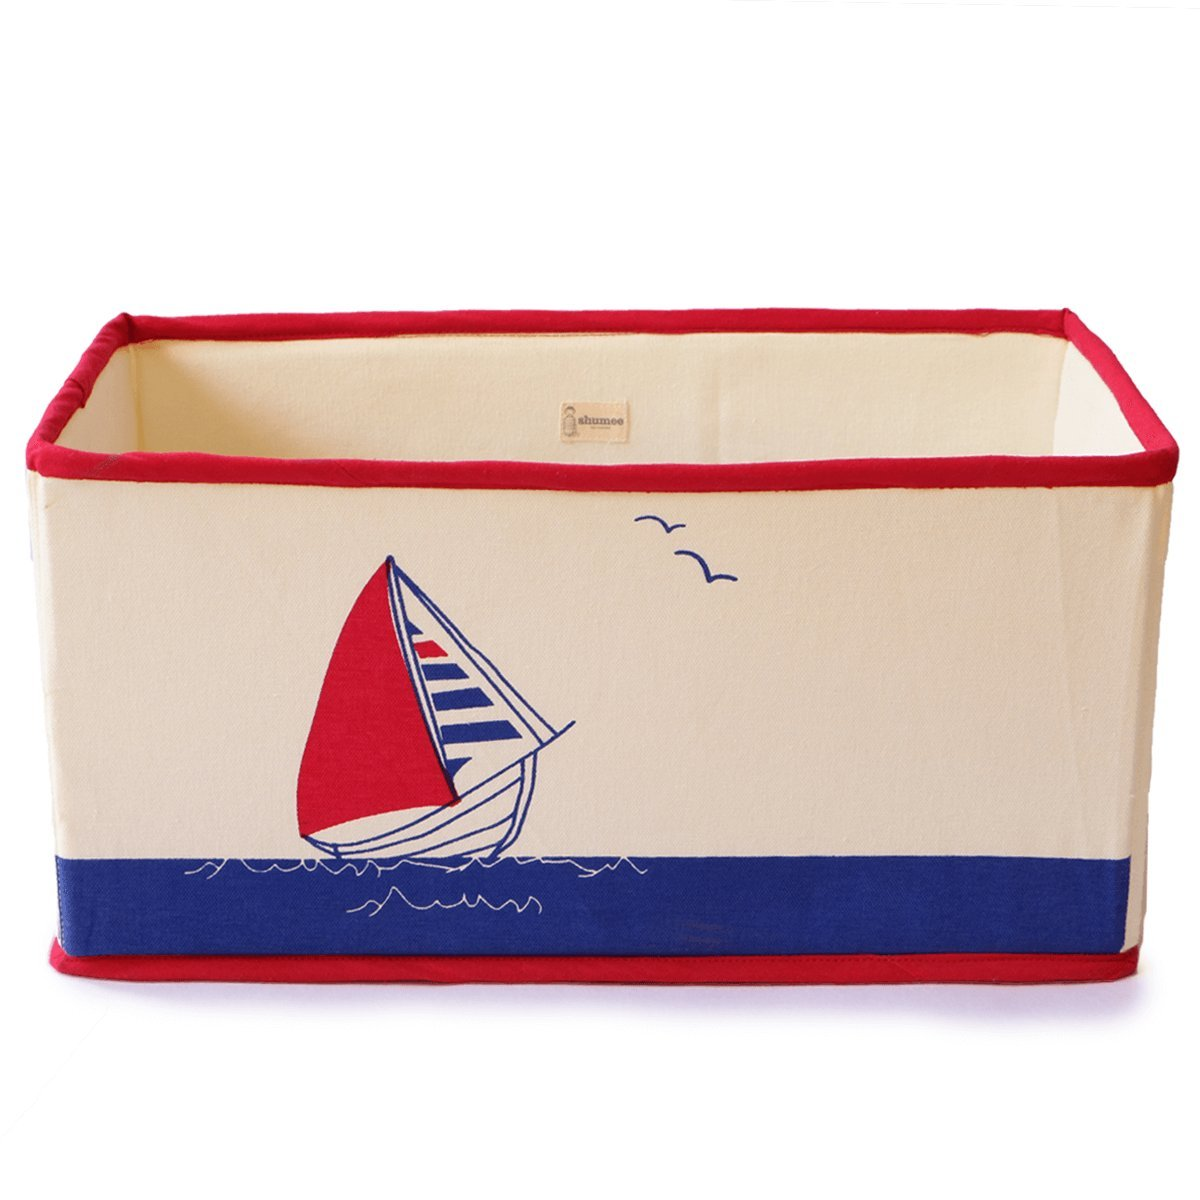 shumee-toys revisited Canvas Toy Storage Bin - Fold-able, Lined with hardboard & Stack-able … (Sailboat Saver)